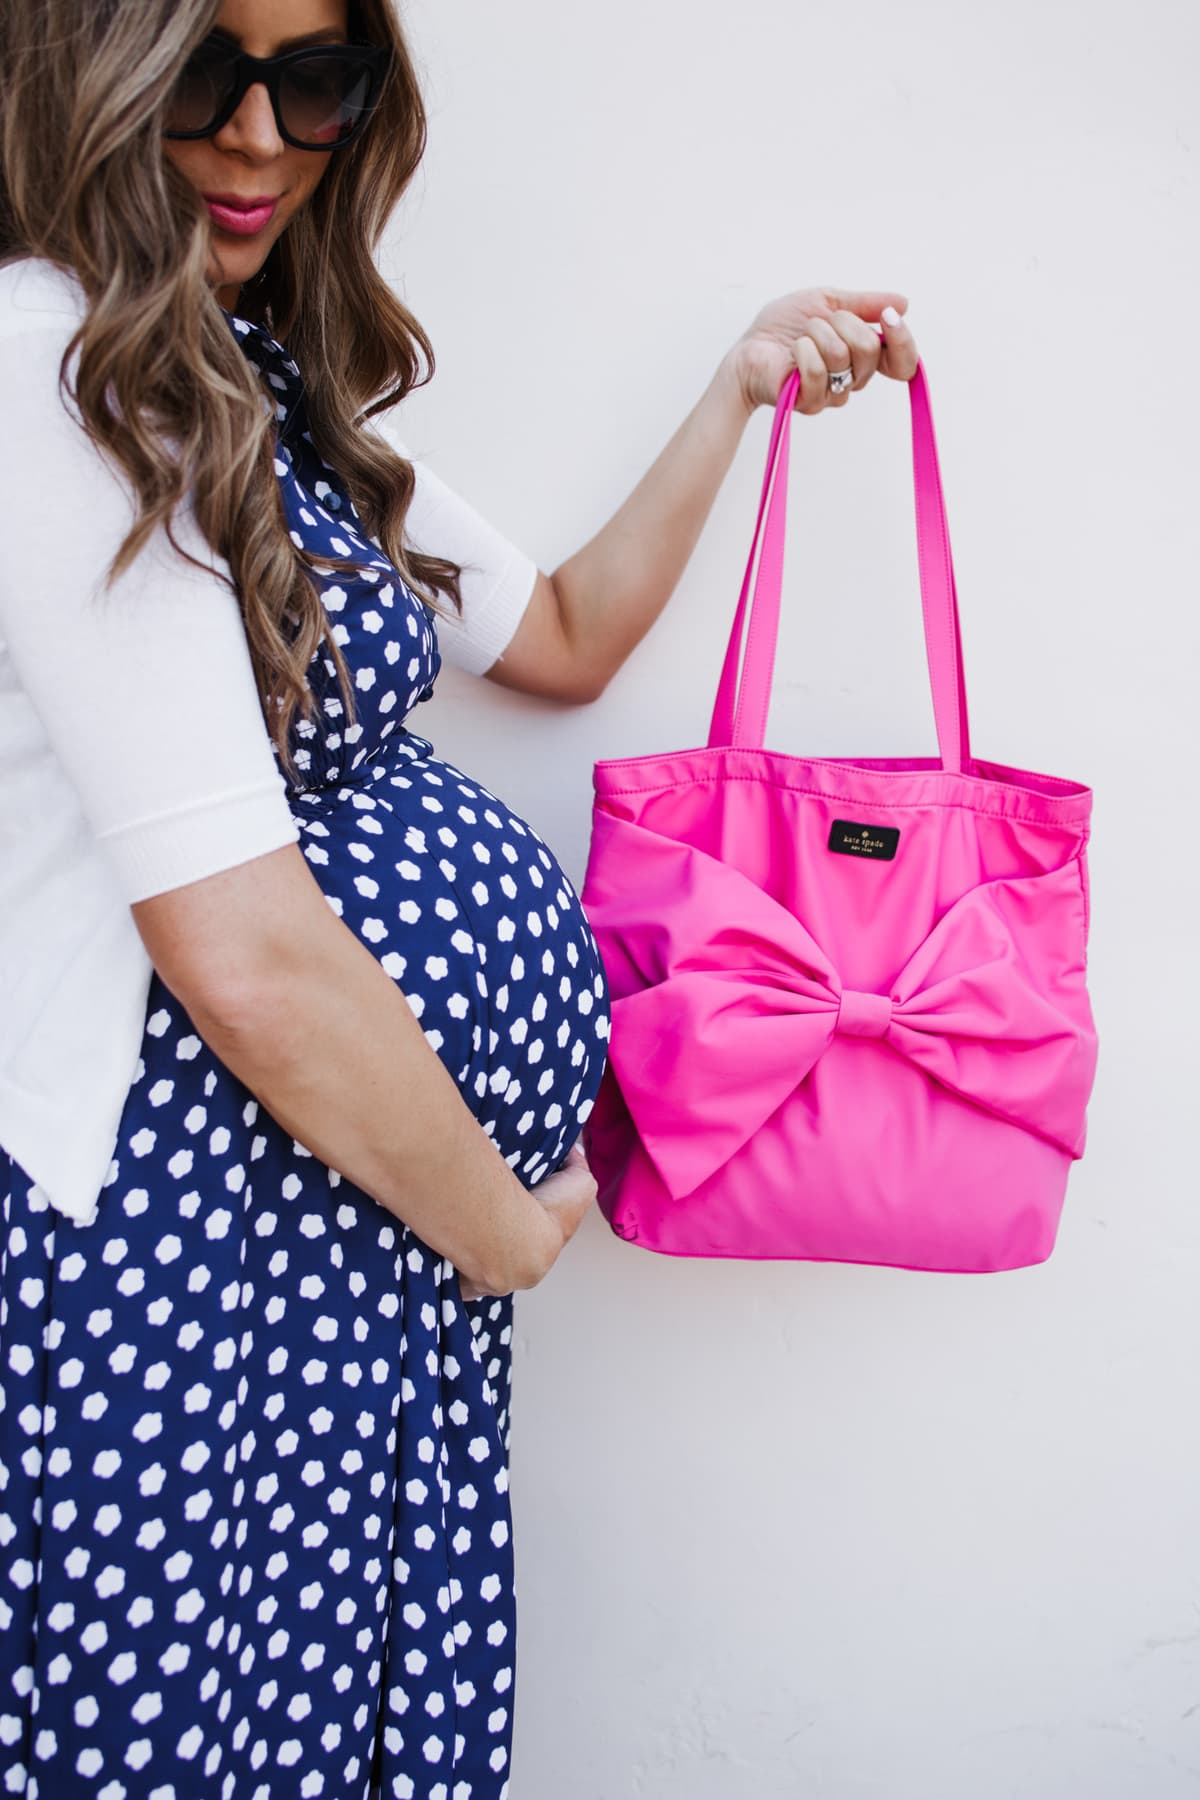 favorite pieces from kate spade new york